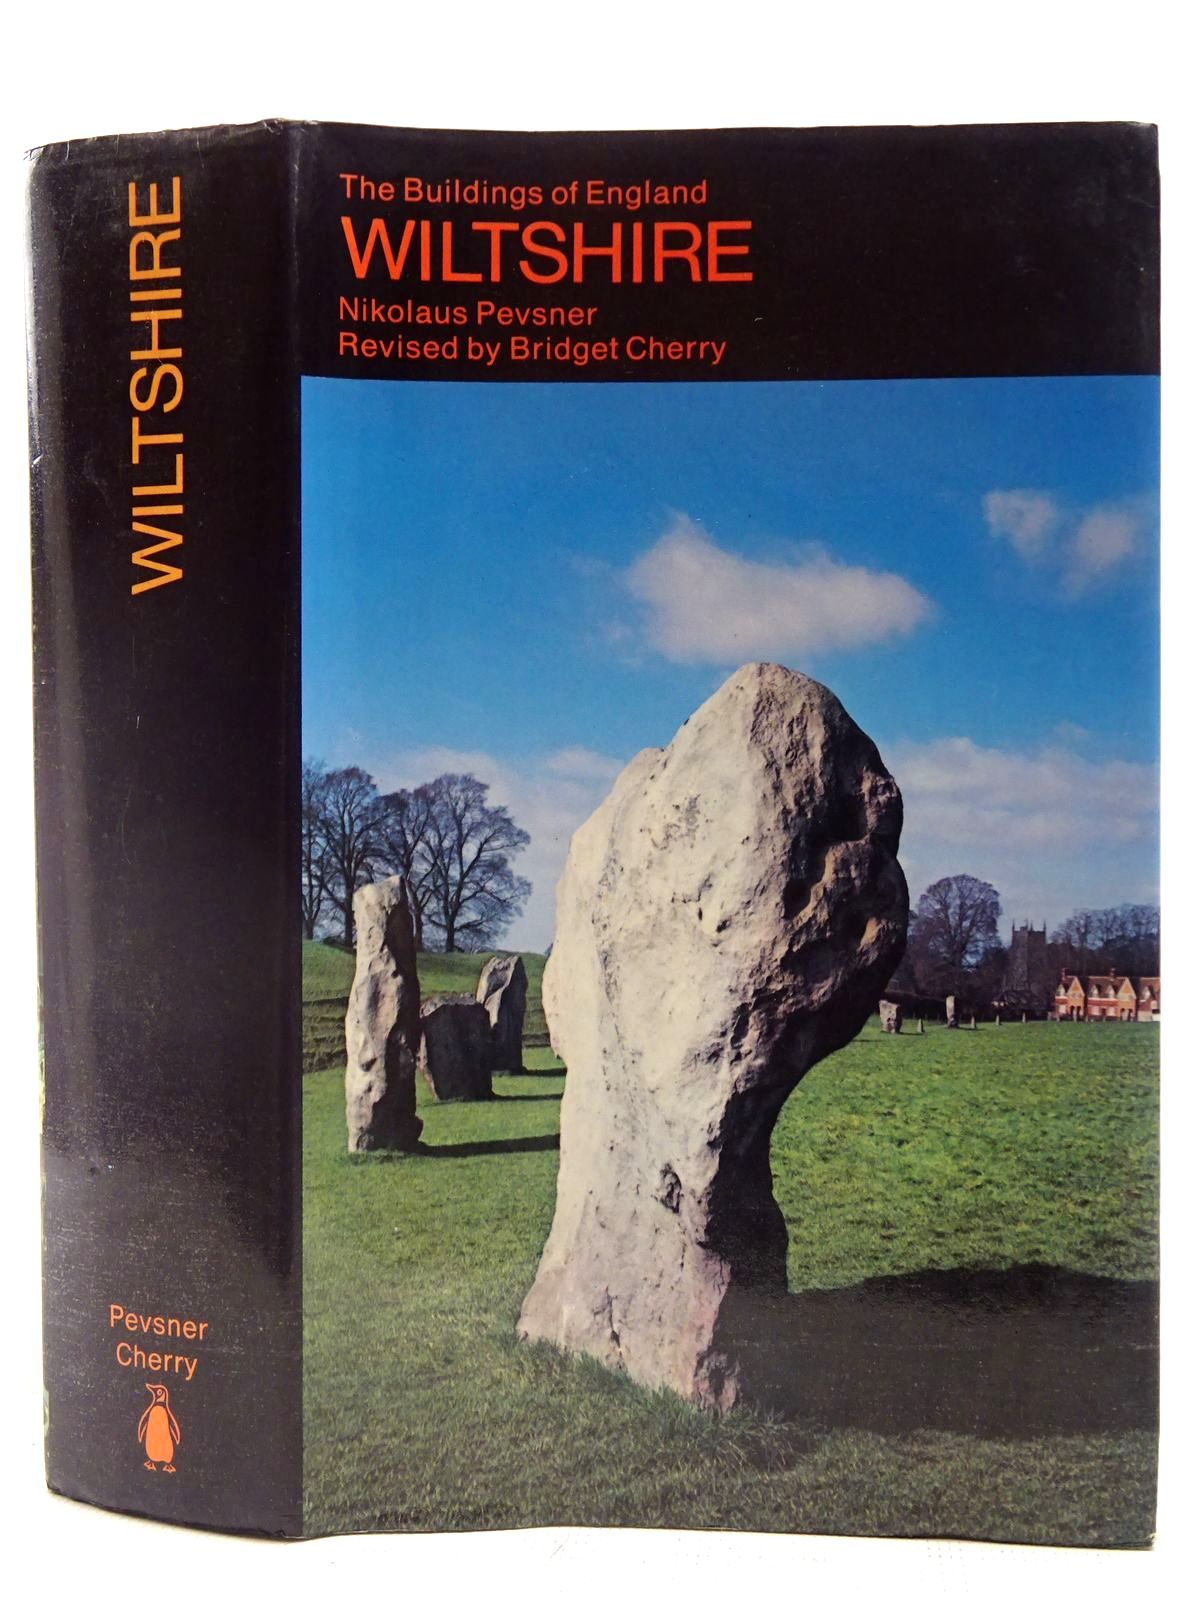 Photo of WILTSHIRE (BUILDINGS OF ENGLAND) written by Pevsner, Nikolaus Cherry, Bridget published by Penguin (STOCK CODE: 2127669)  for sale by Stella & Rose's Books